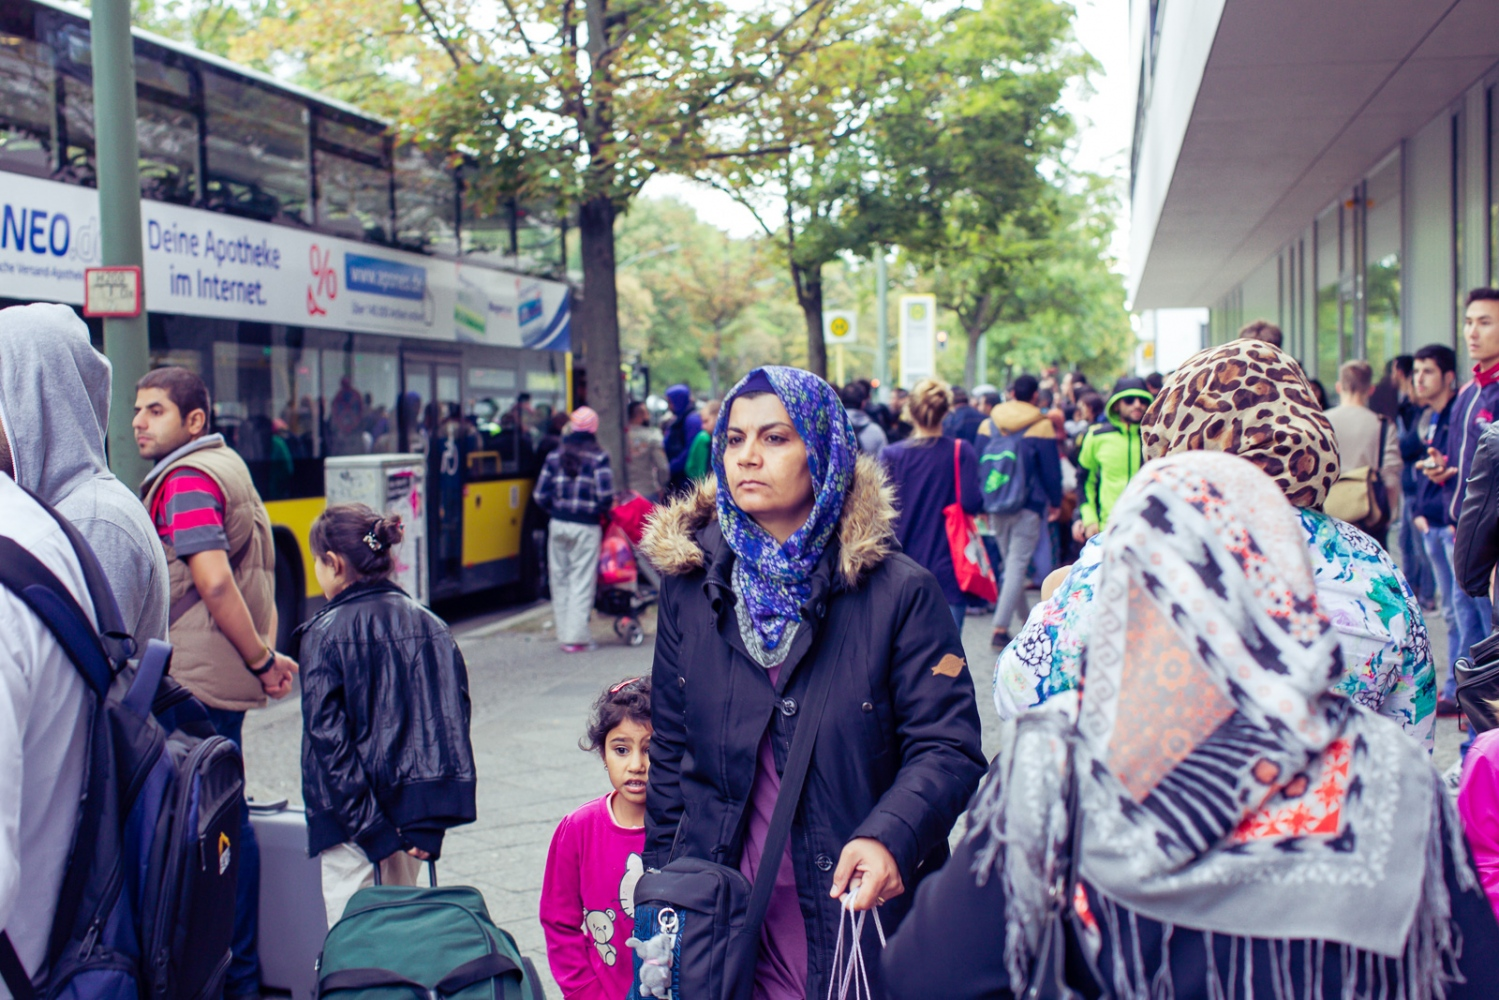 Berlin, GERMANY, September 9, 2015: Refugees wait for designated buses to shuttle them to temporary shelters after waiting all day at LaGeSo (regional office for health and social affairs).